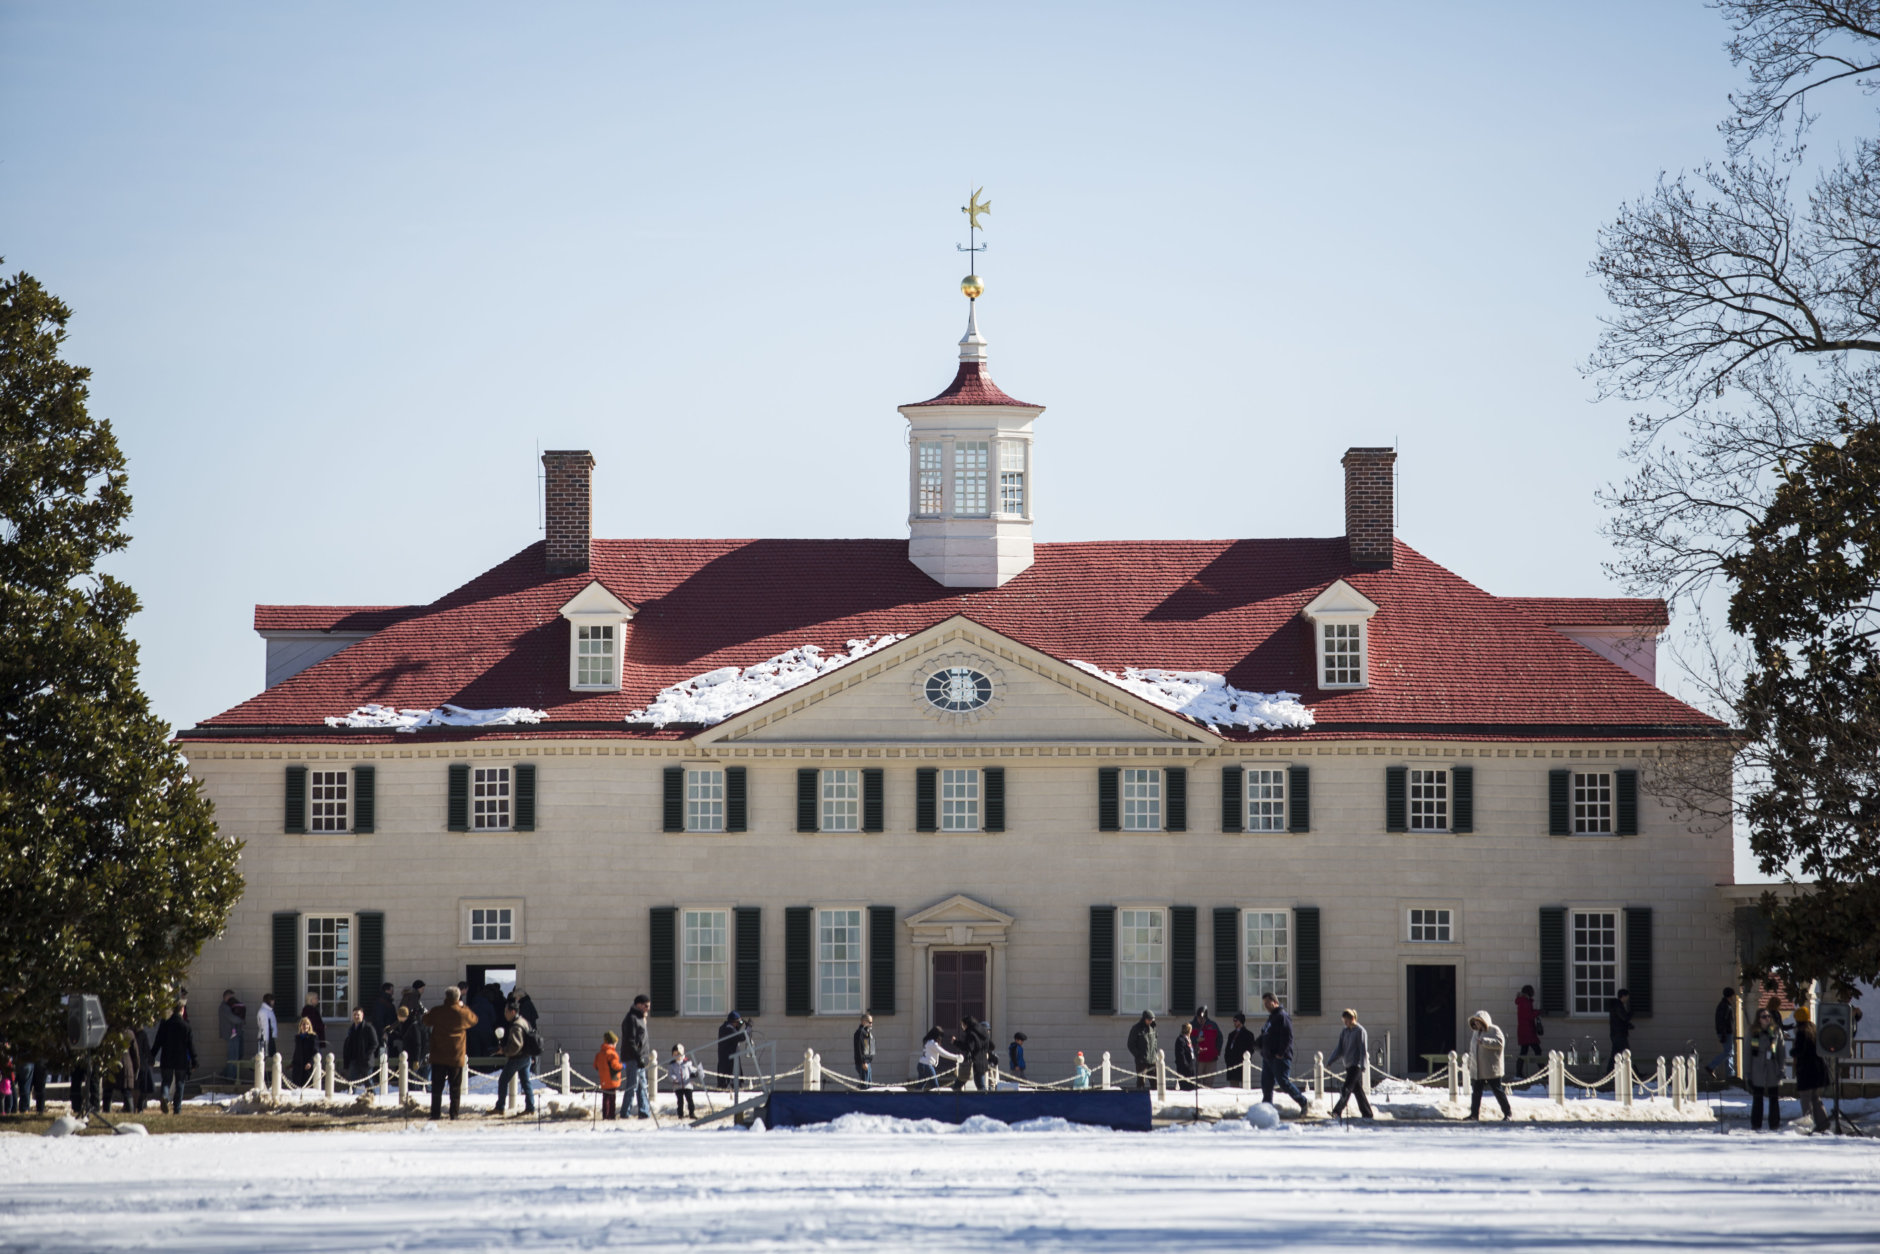 """<p><strong>Buff up on your history</strong></p> <p>Just a short drive outside of D.C. is <a href=""""http://www.mountvernon.org/"""" target=""""_blank"""" rel=""""noopener noreferrer"""">George Washington&#8217;s Mount Vernon</a>, where you can take a tour of the mansion, the grounds and even the first president&#8217;s whiskey distillery. Holiday-themed events includes a behind-the-scenes look at how George Washington&#8217;s Christmas dinner was prepared, chocolate-making demonstrations, candlelight tours and Christmas illumination fireworks Dec. 20 and Dec. 21. See more holiday events <a href=""""https://www.mountvernon.org/plan-your-visit/tours-activities/christmas-at-mount-vernon"""" target=""""_blank"""" rel=""""noopener"""">on the Mount Vernon website</a>.</p>"""